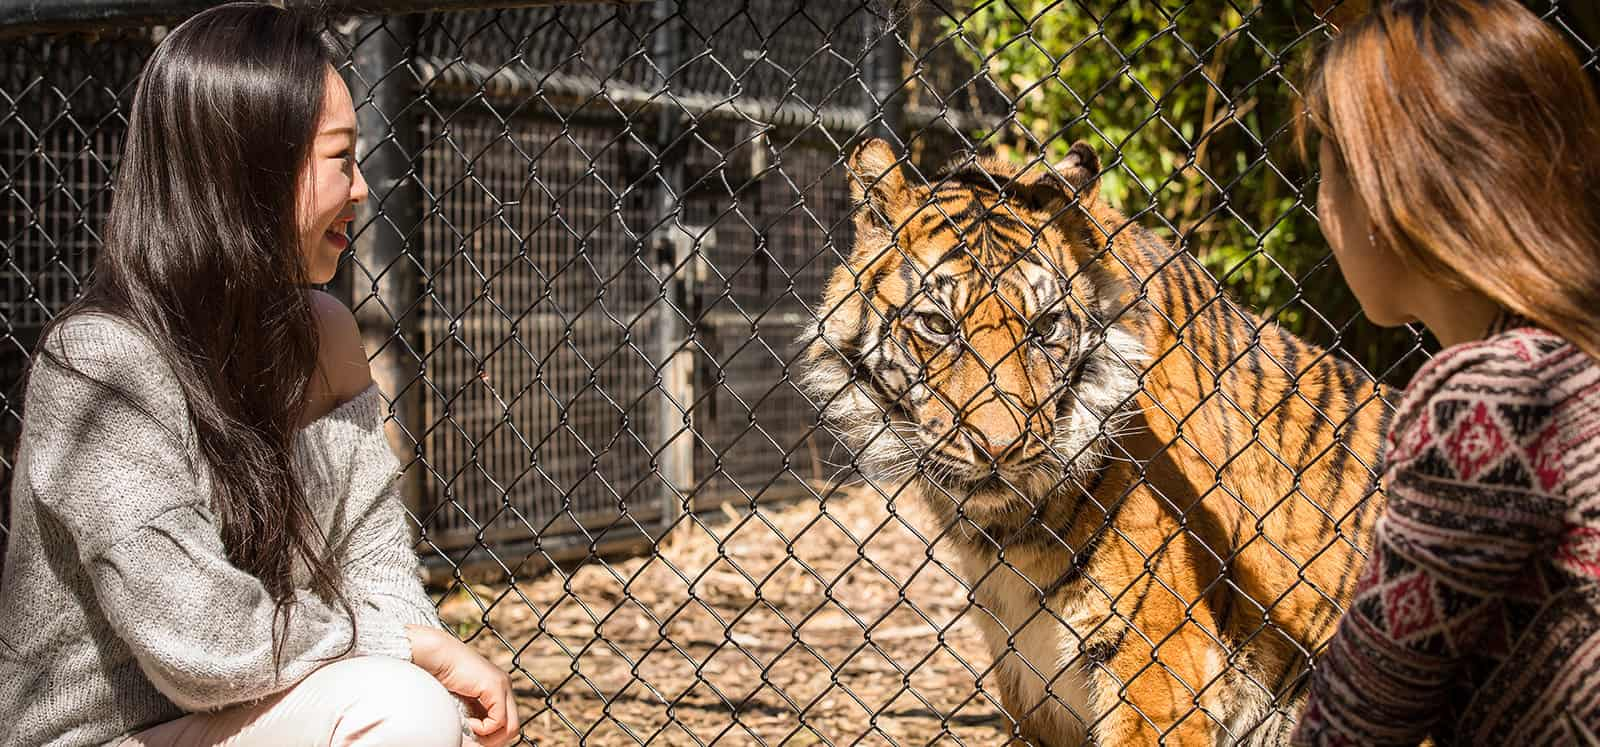 Women staring at Sumatran Tiger during Big Cat Interactive experience at Adelaide Zoo